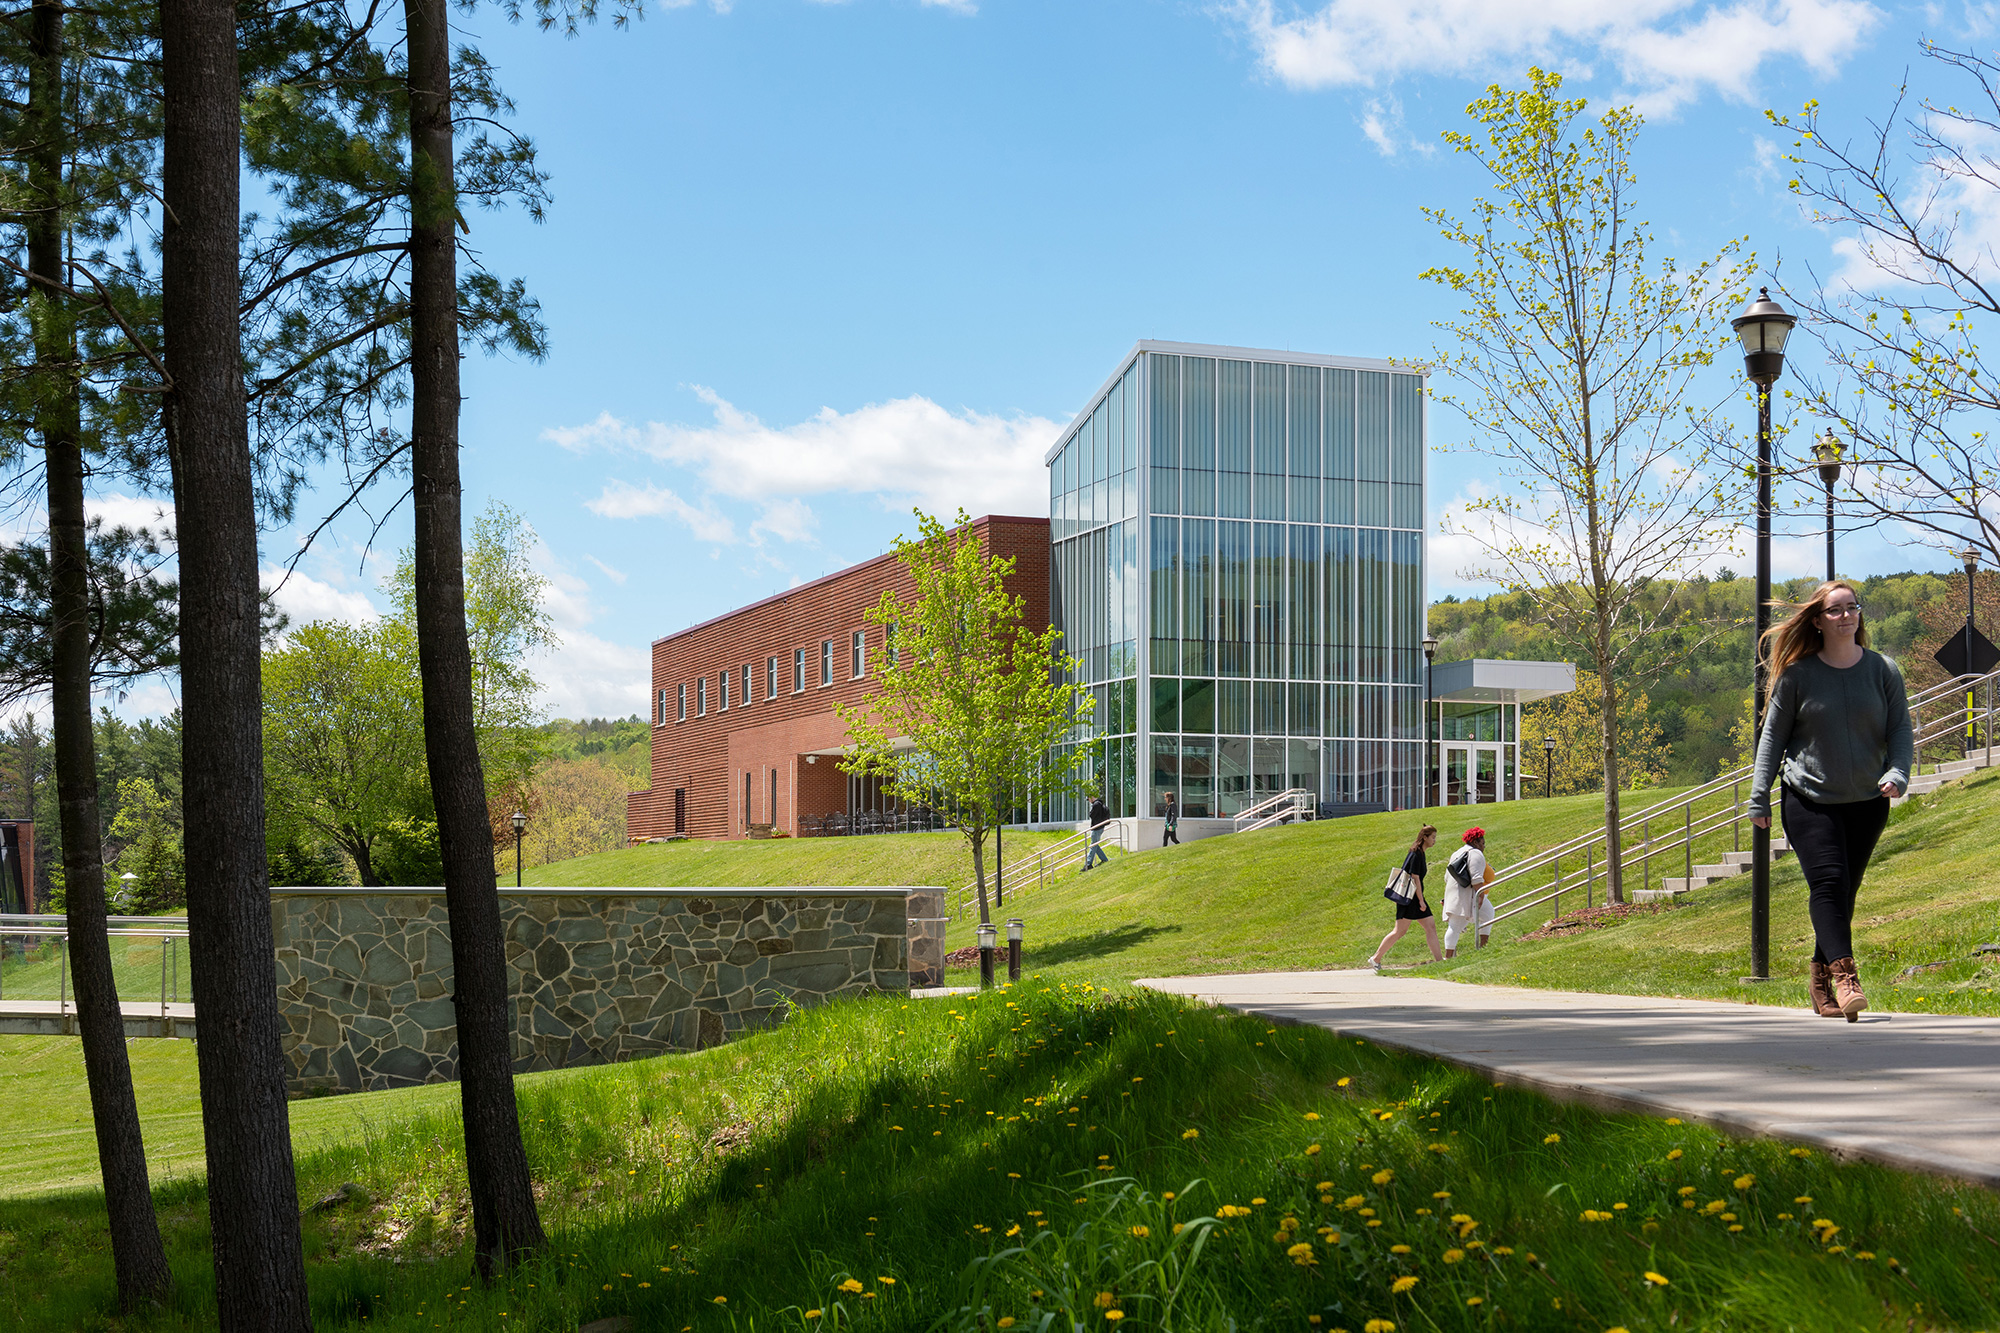 Oneonta by Architectural Resources